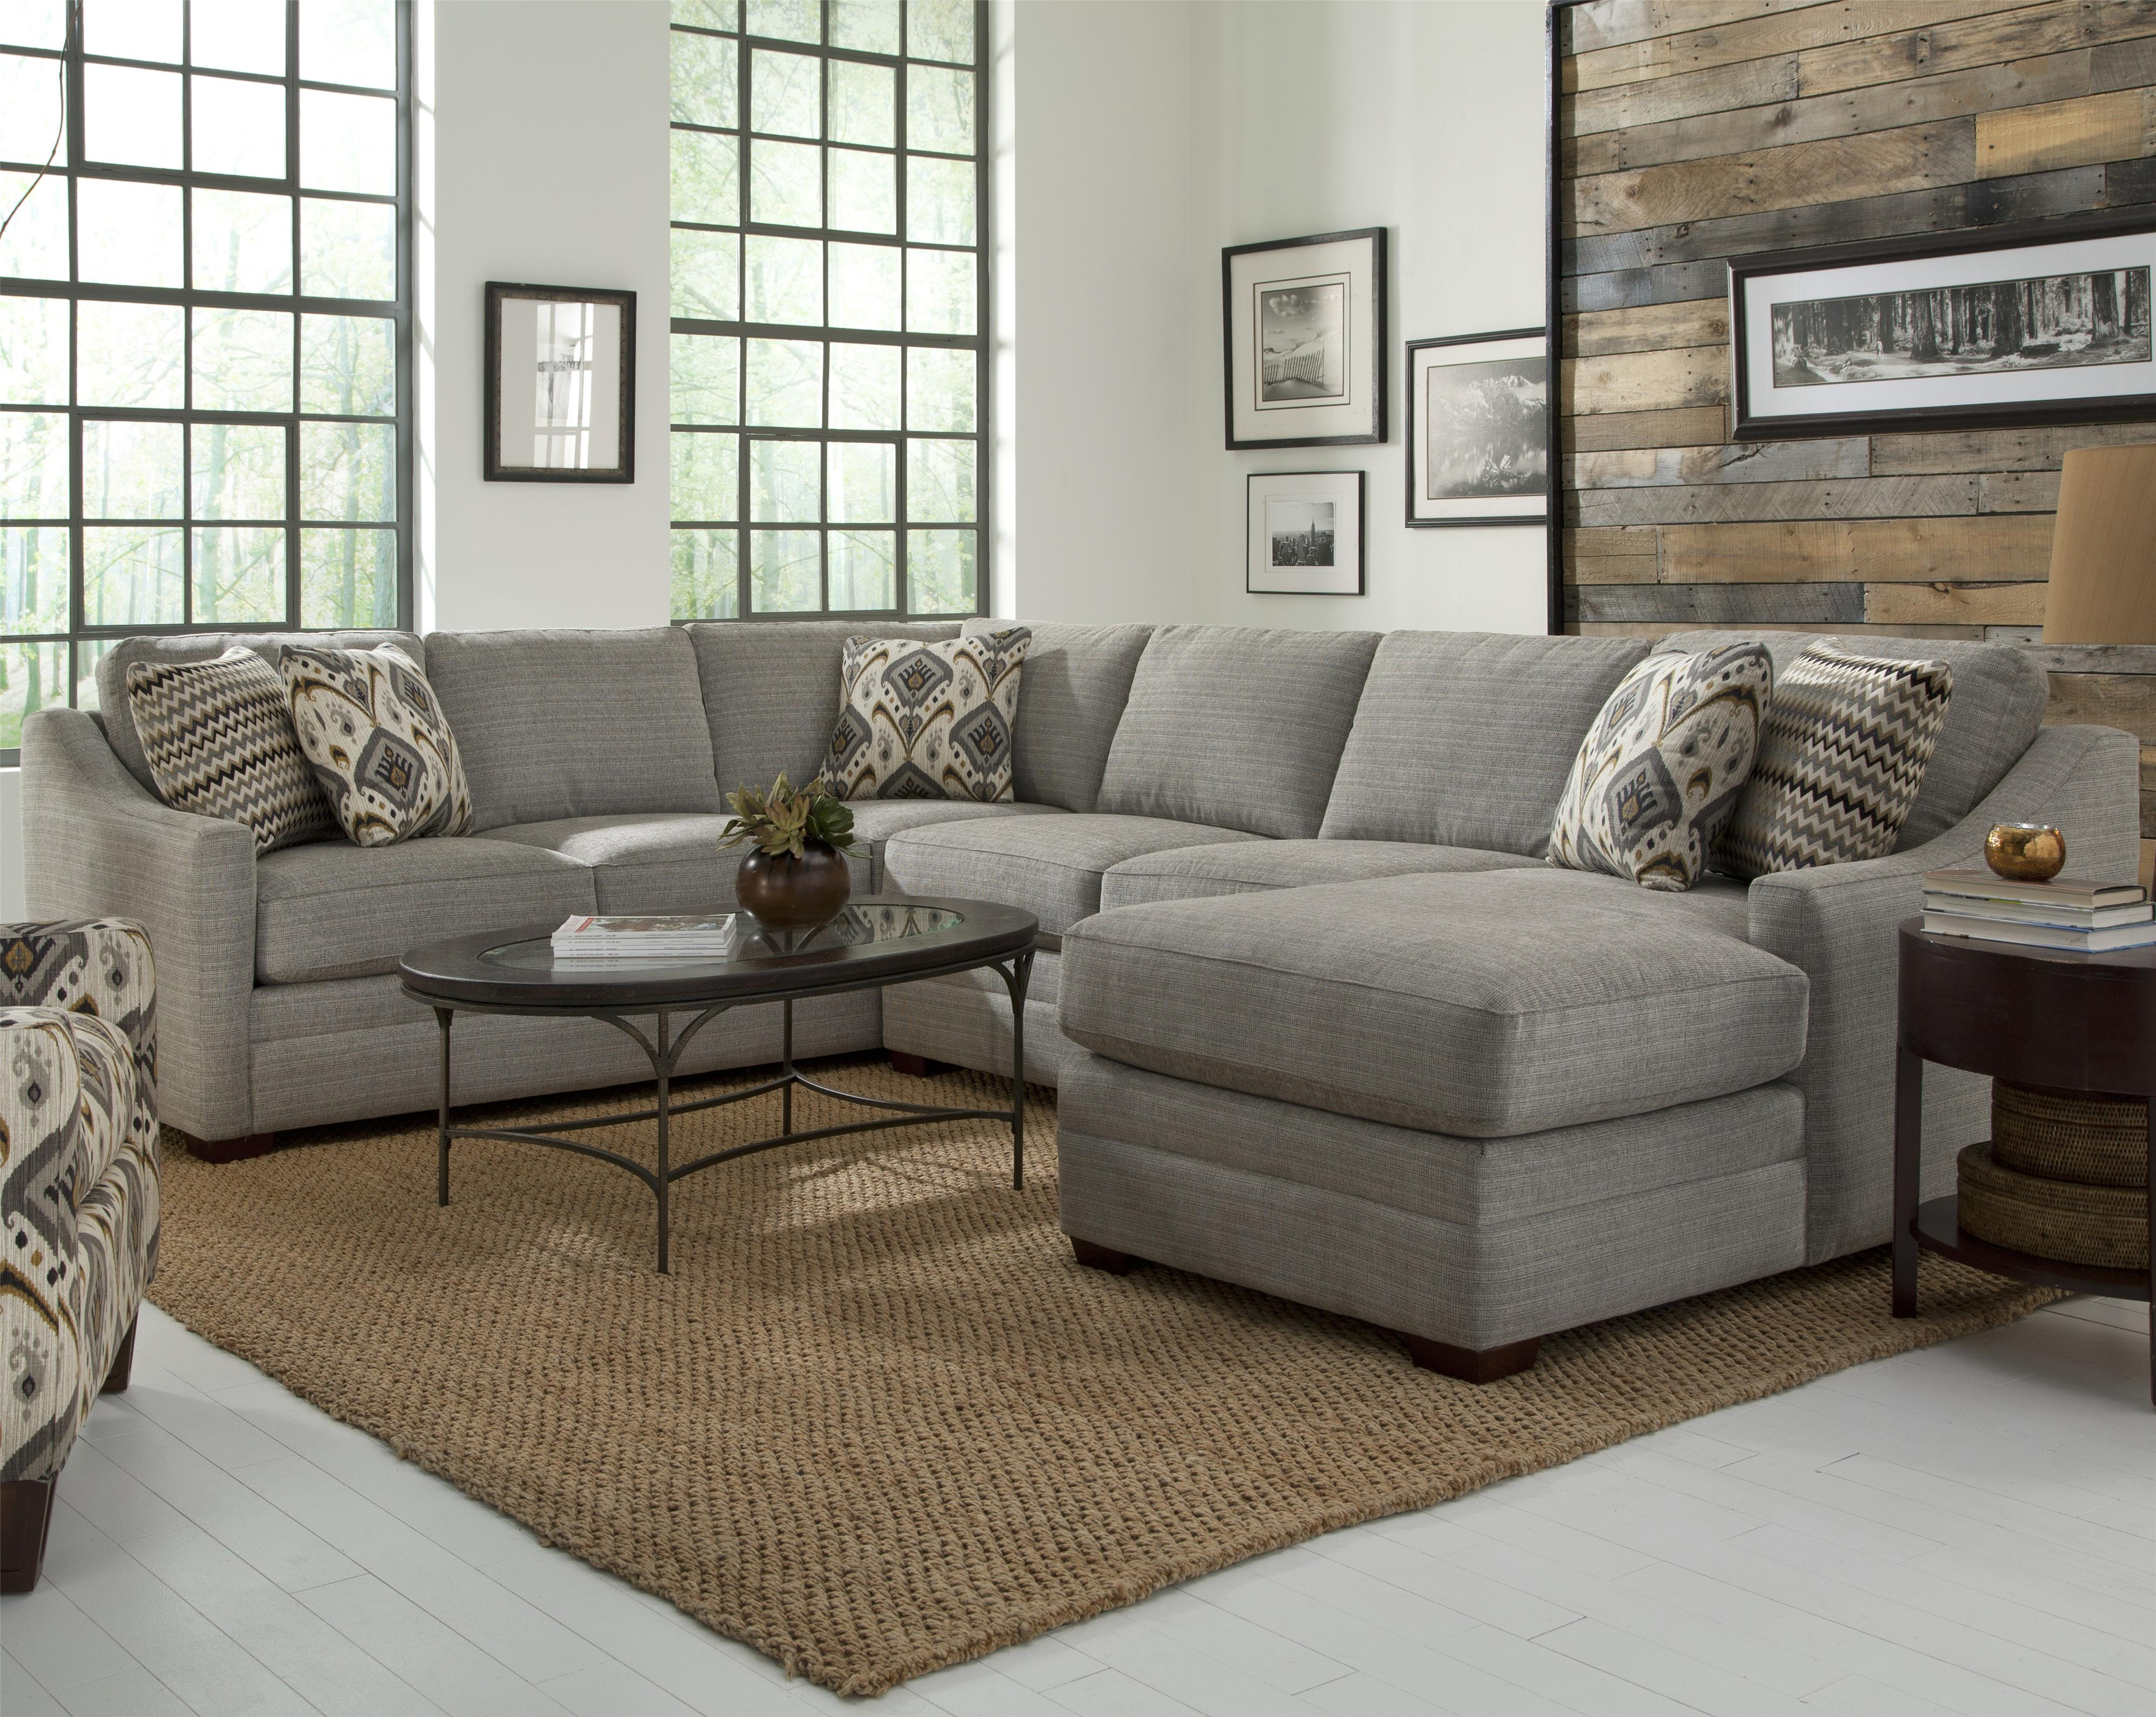 F9 Custom Collection Customizable 4 Pc Sectional Sofa by Craftmaster at Thornton Furniture